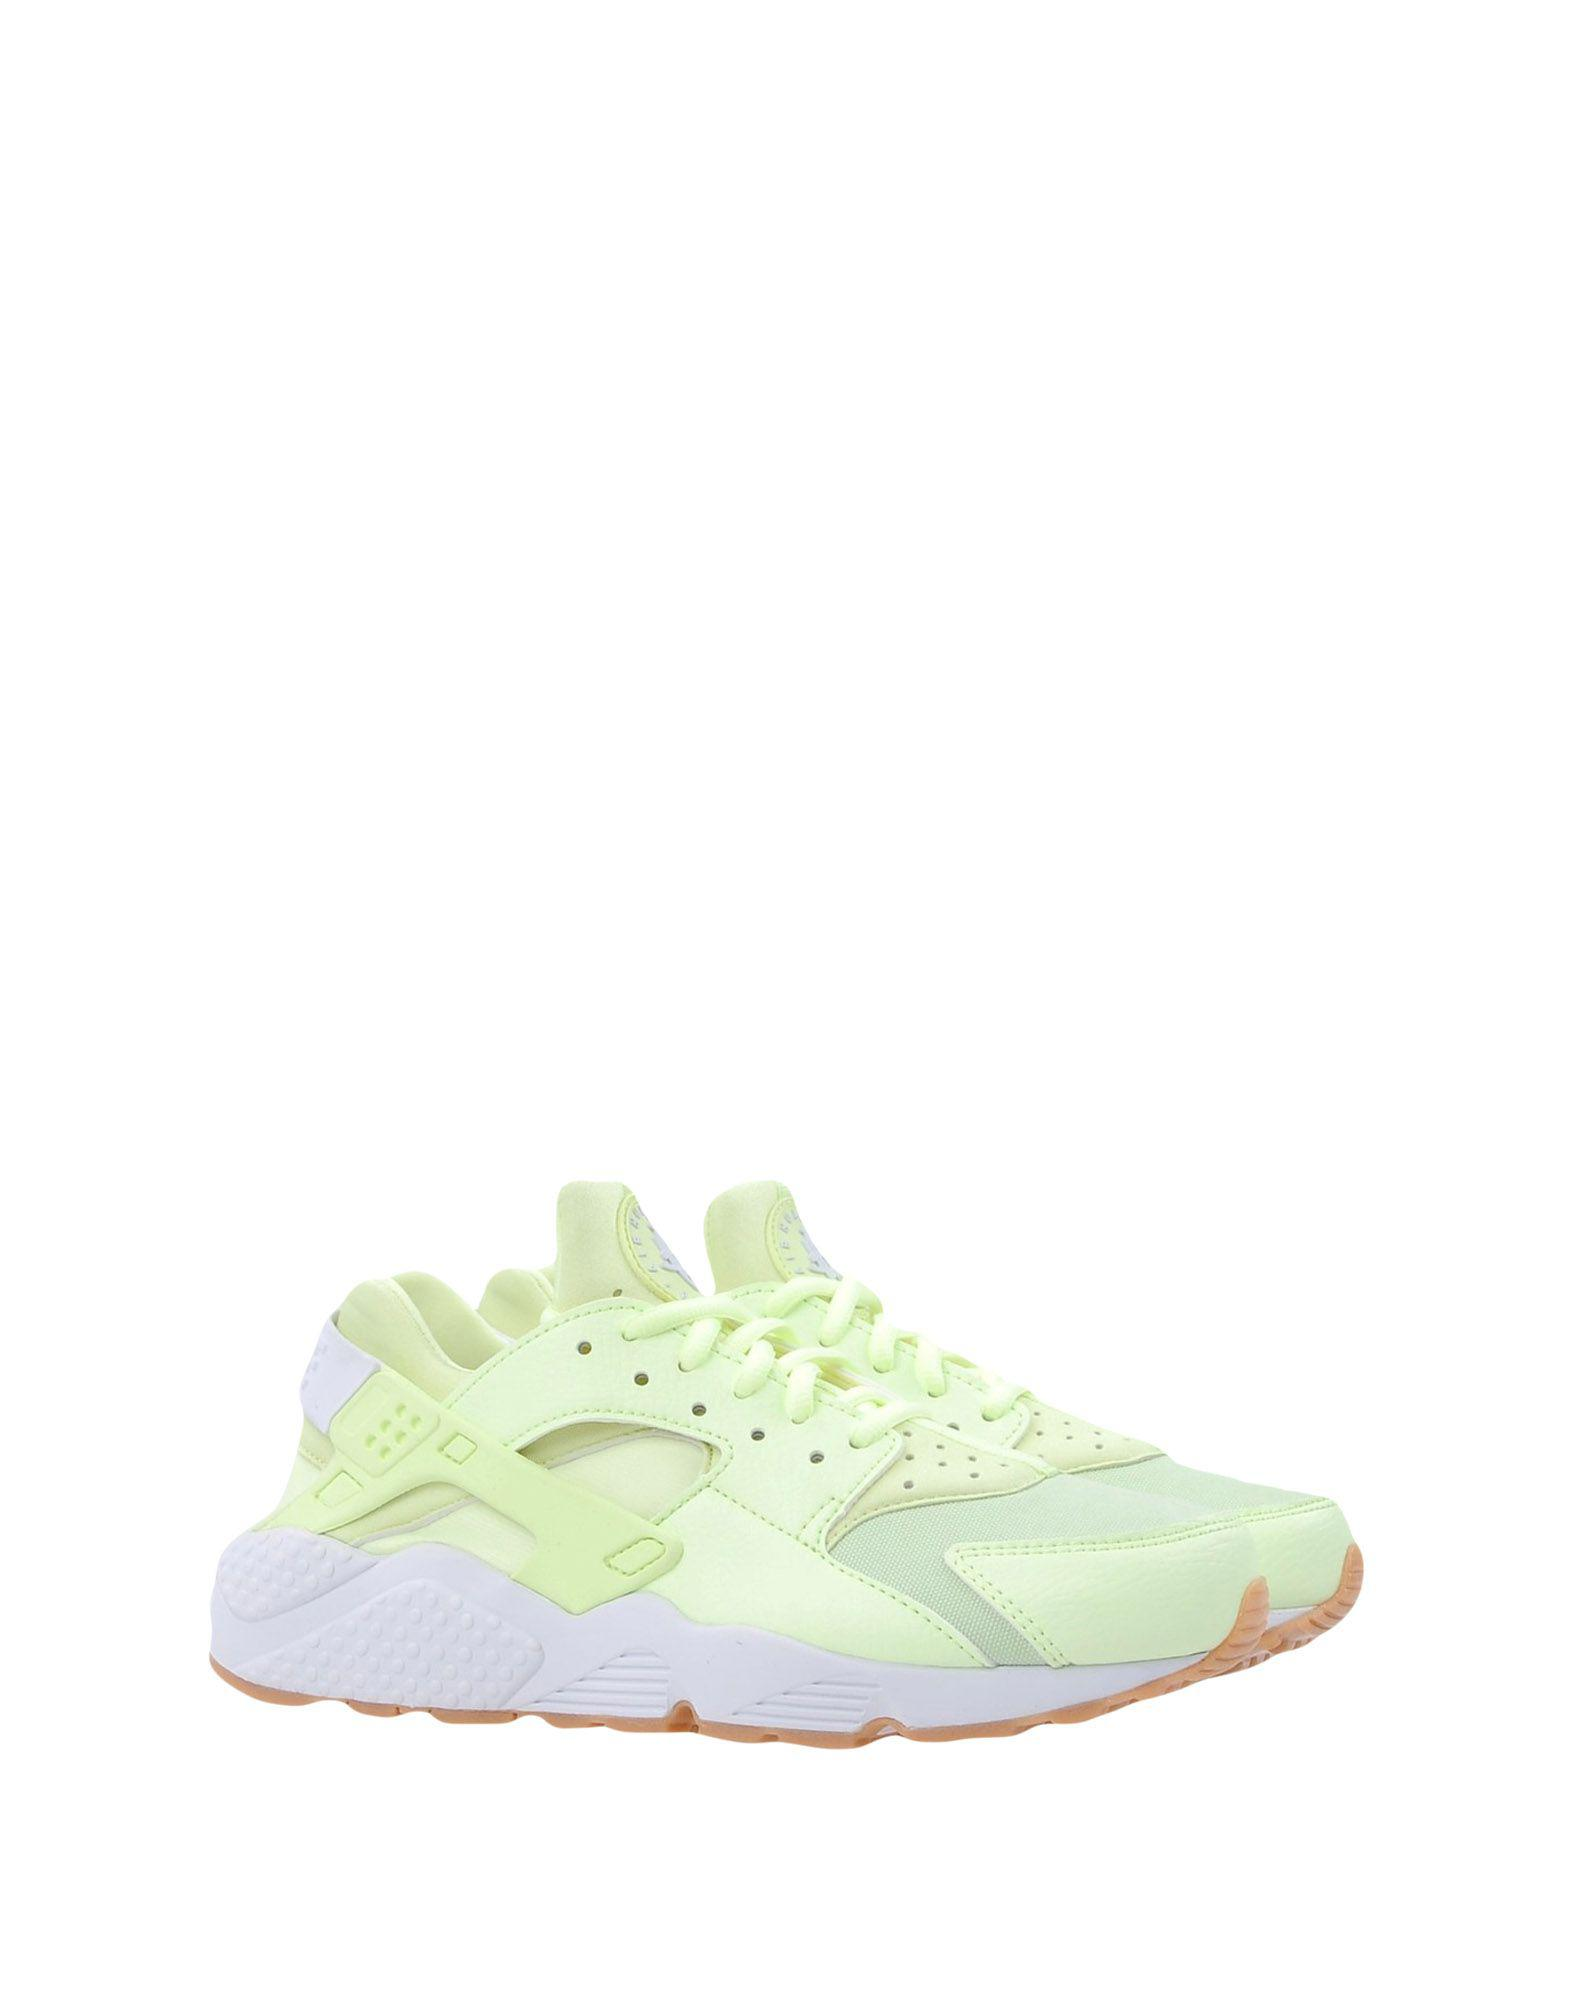 Nike Canvas Low-tops & Sneakers in Acid Green (Green)